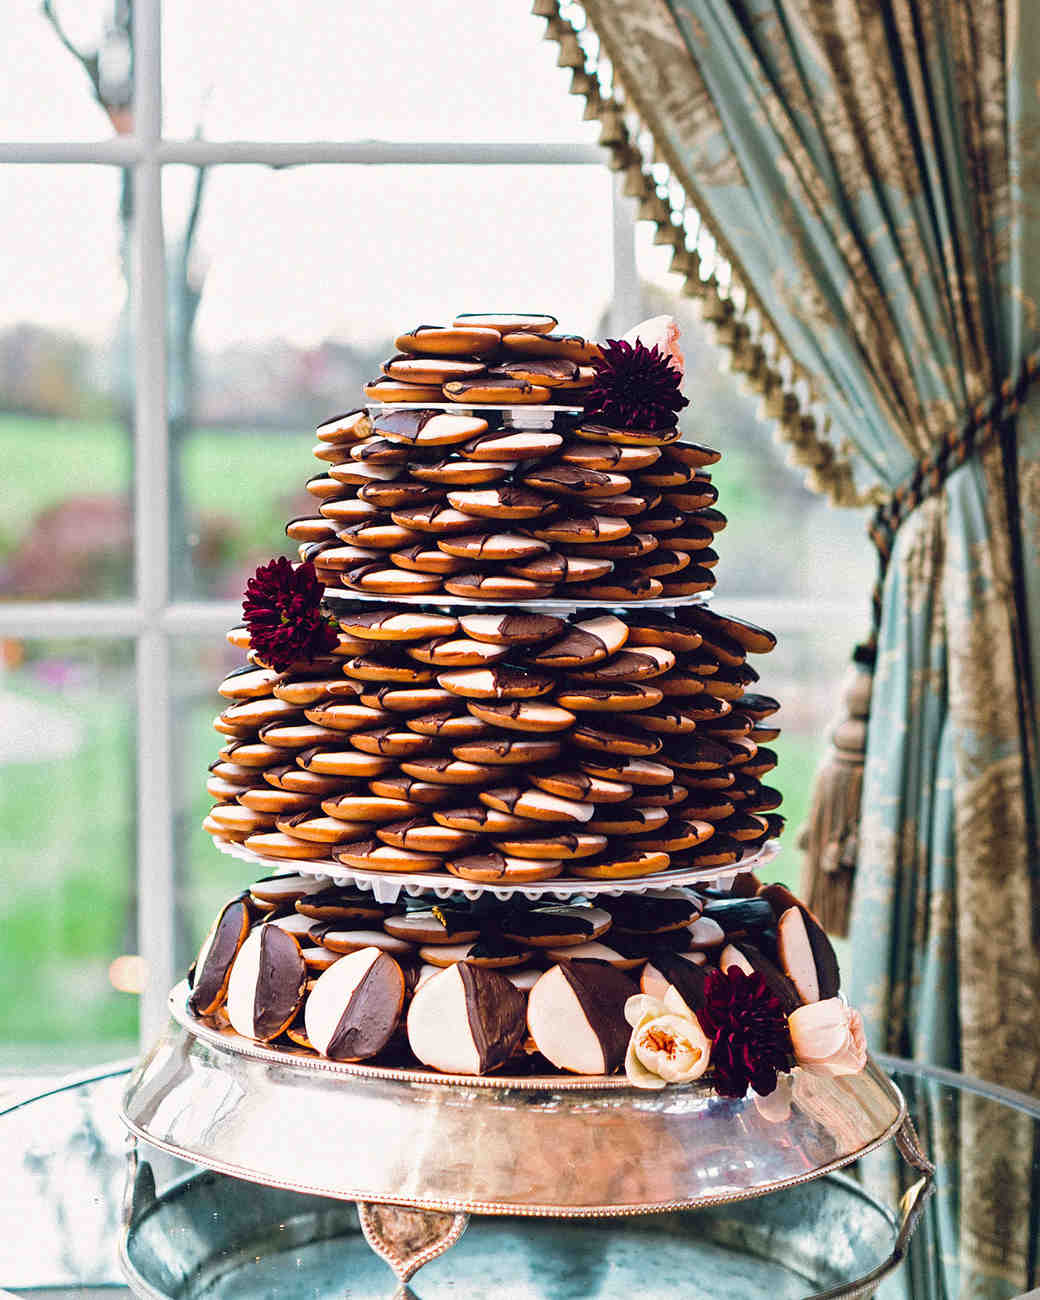 4-tier chocolate cookie tower